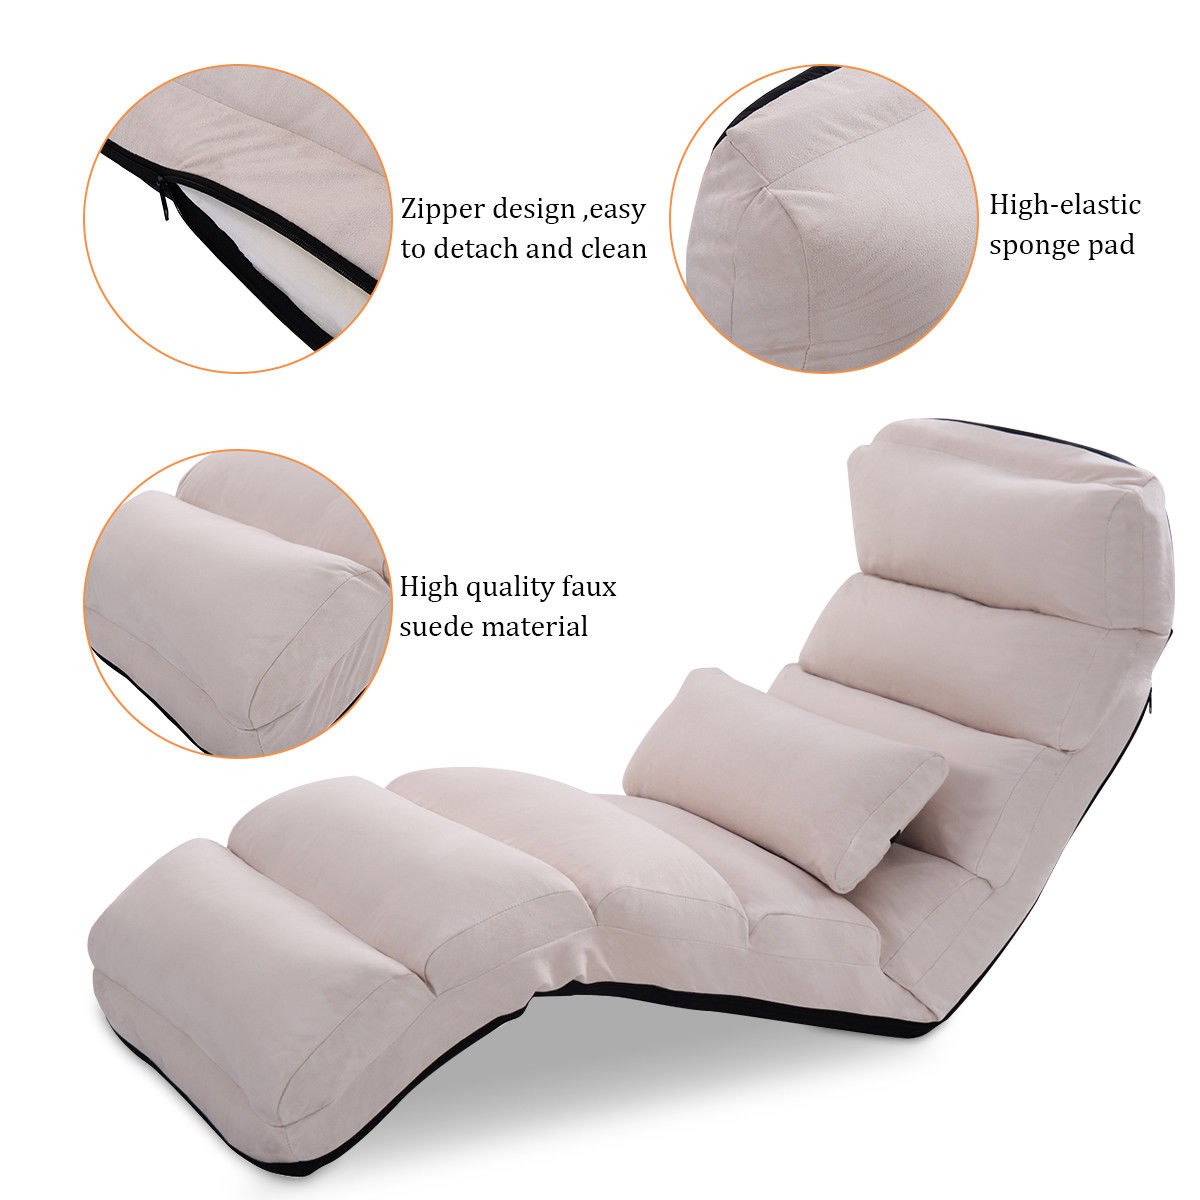 Costway Beige Folding Lazy Sofa Chair Stylish Sofa Couch Beds Lounge Chair  W/Pillow